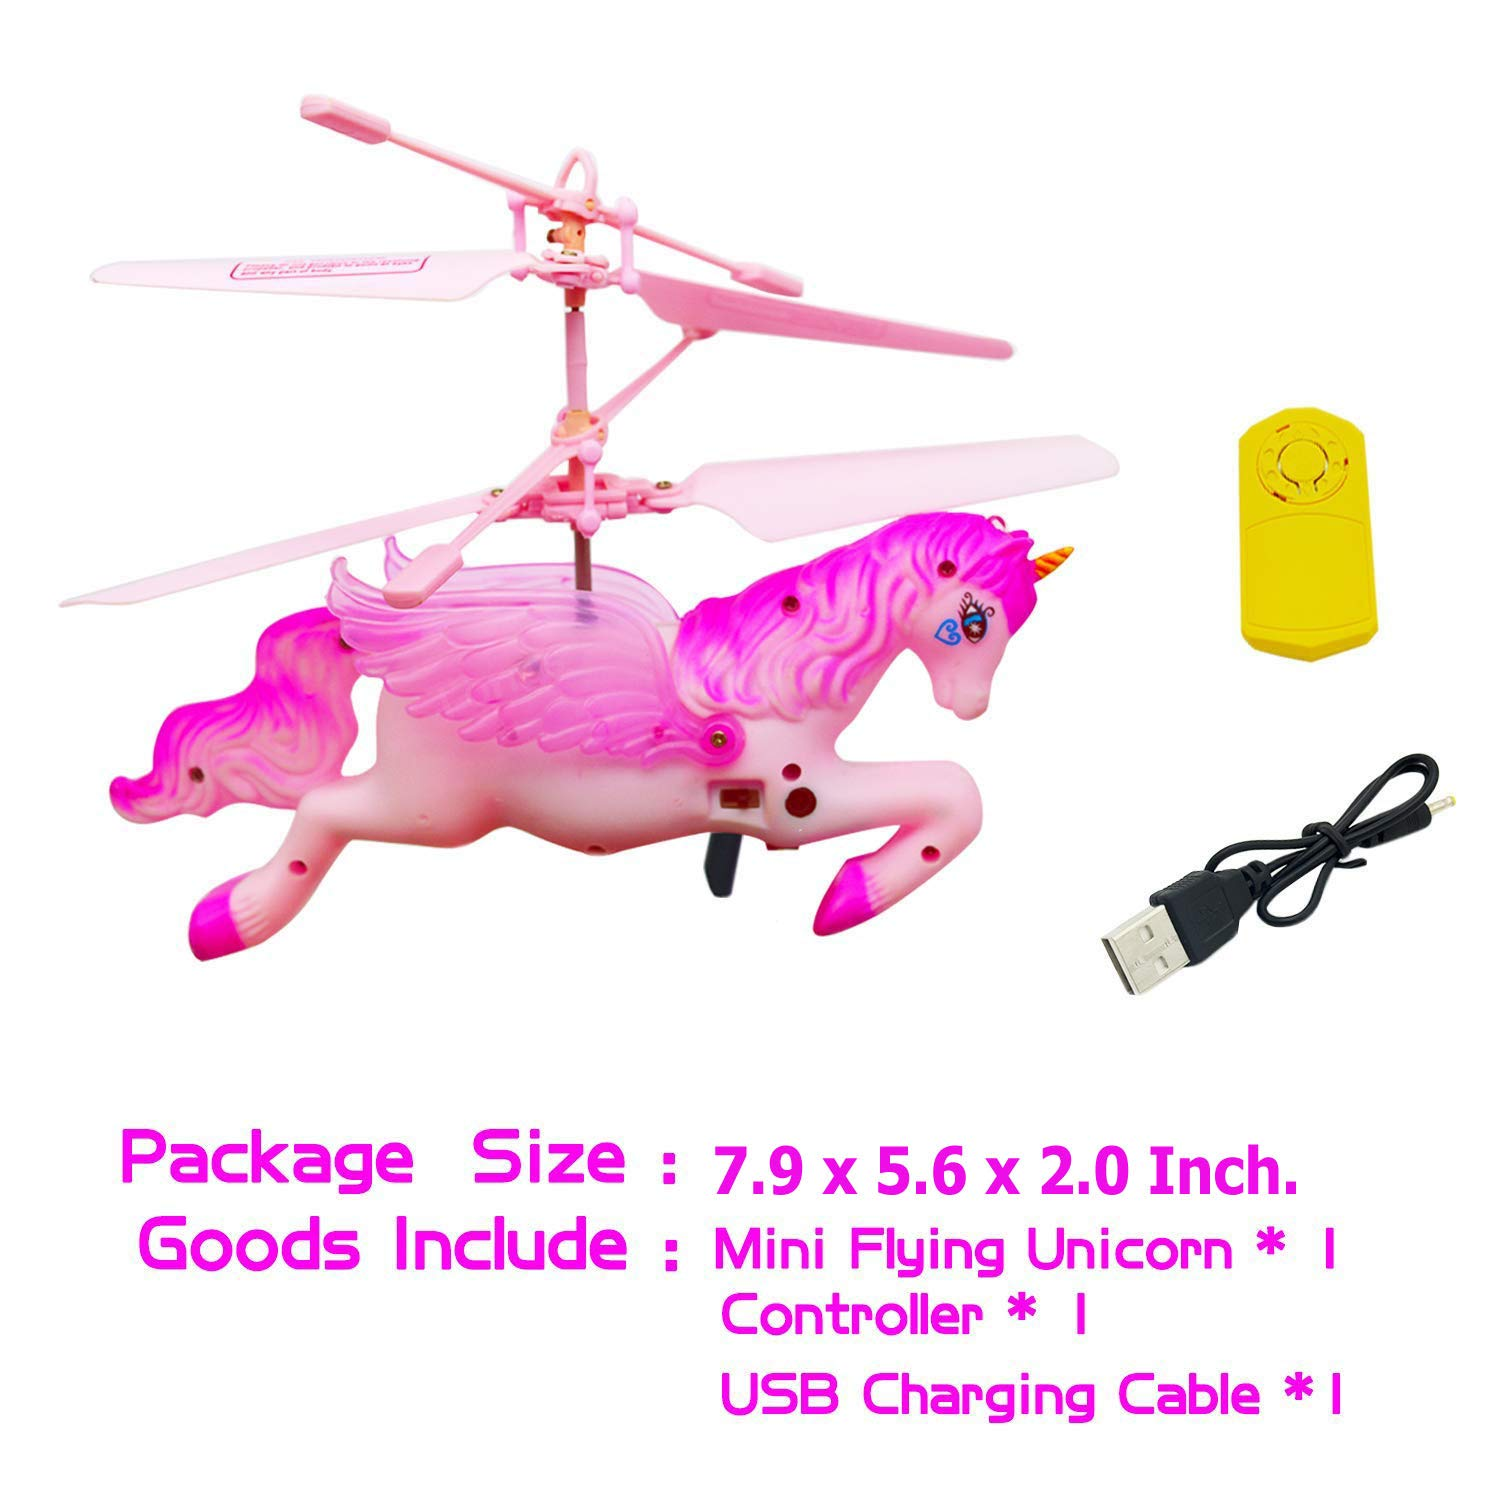 CJWPOWER Unicorn Toys, Pink Mini Flying Helicopter Unicorn Toy Gifts for Little Girls 6 Years Old Up Birthday Xmas Party Supplies by CJWPOWER (Image #5)